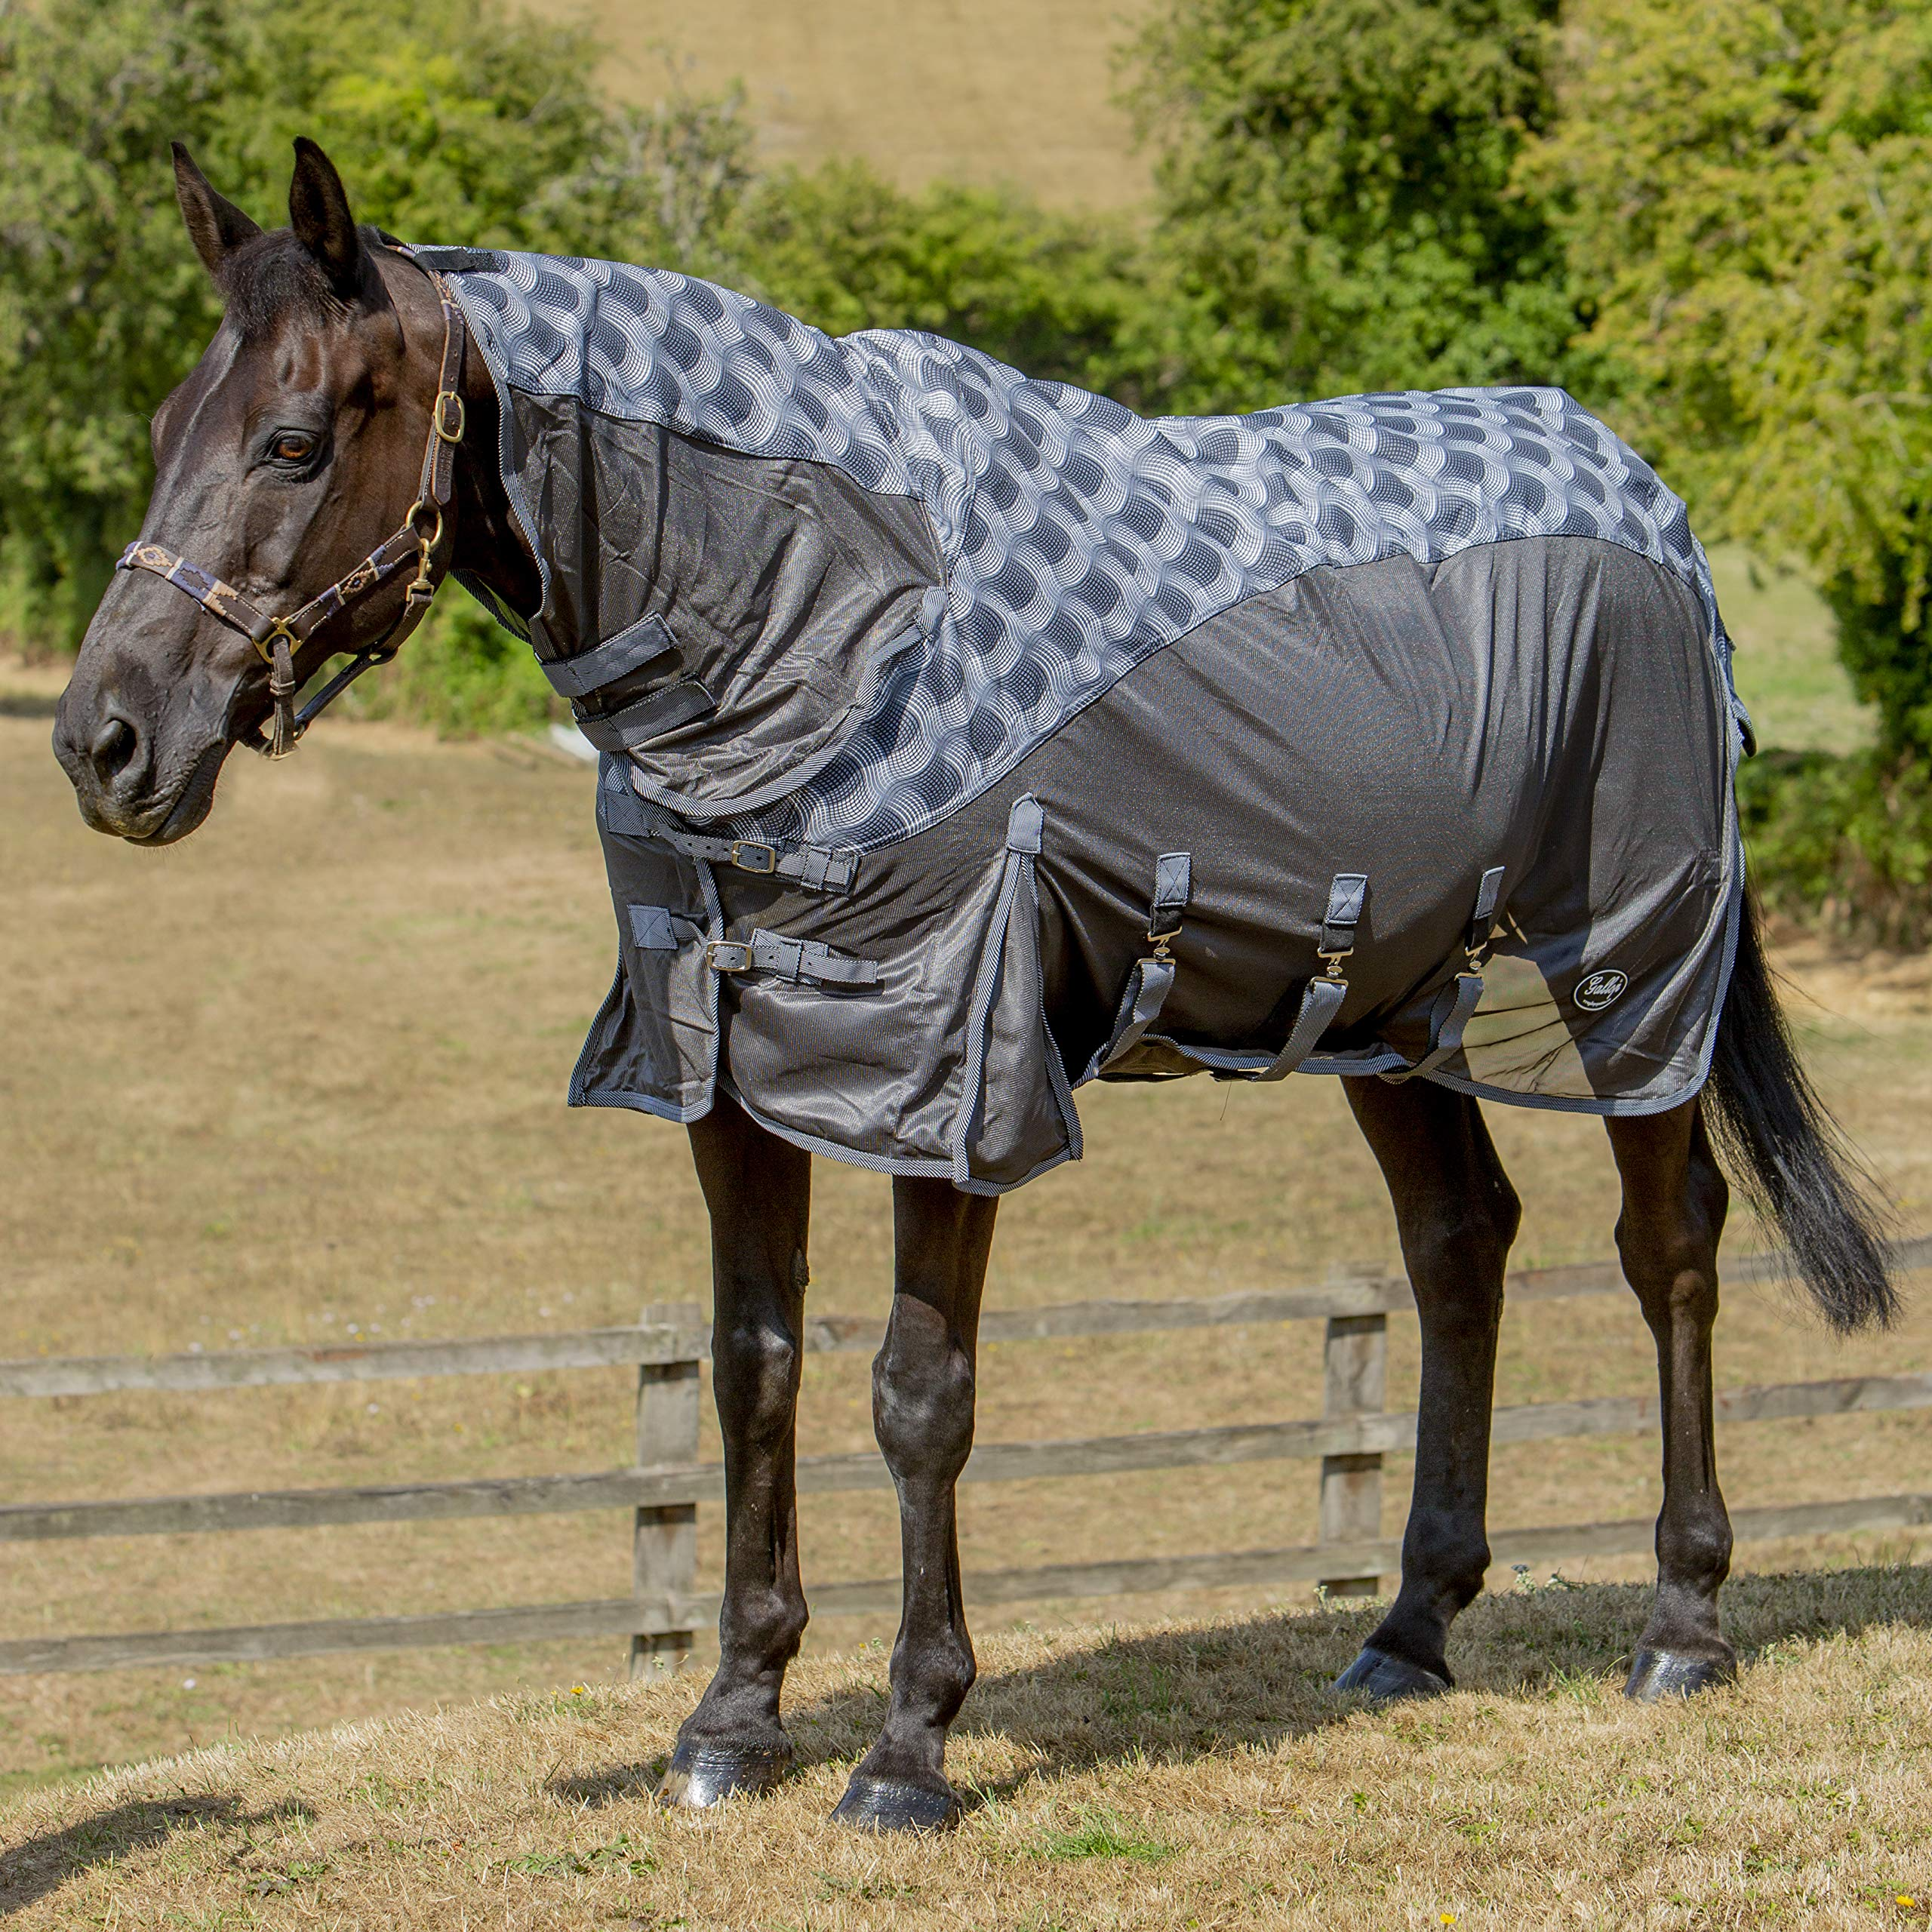 Best On Horse Boh 200G Mediumweight 600D Rip Stop Fixed Combo Neck Waterproof Turnout Blanket